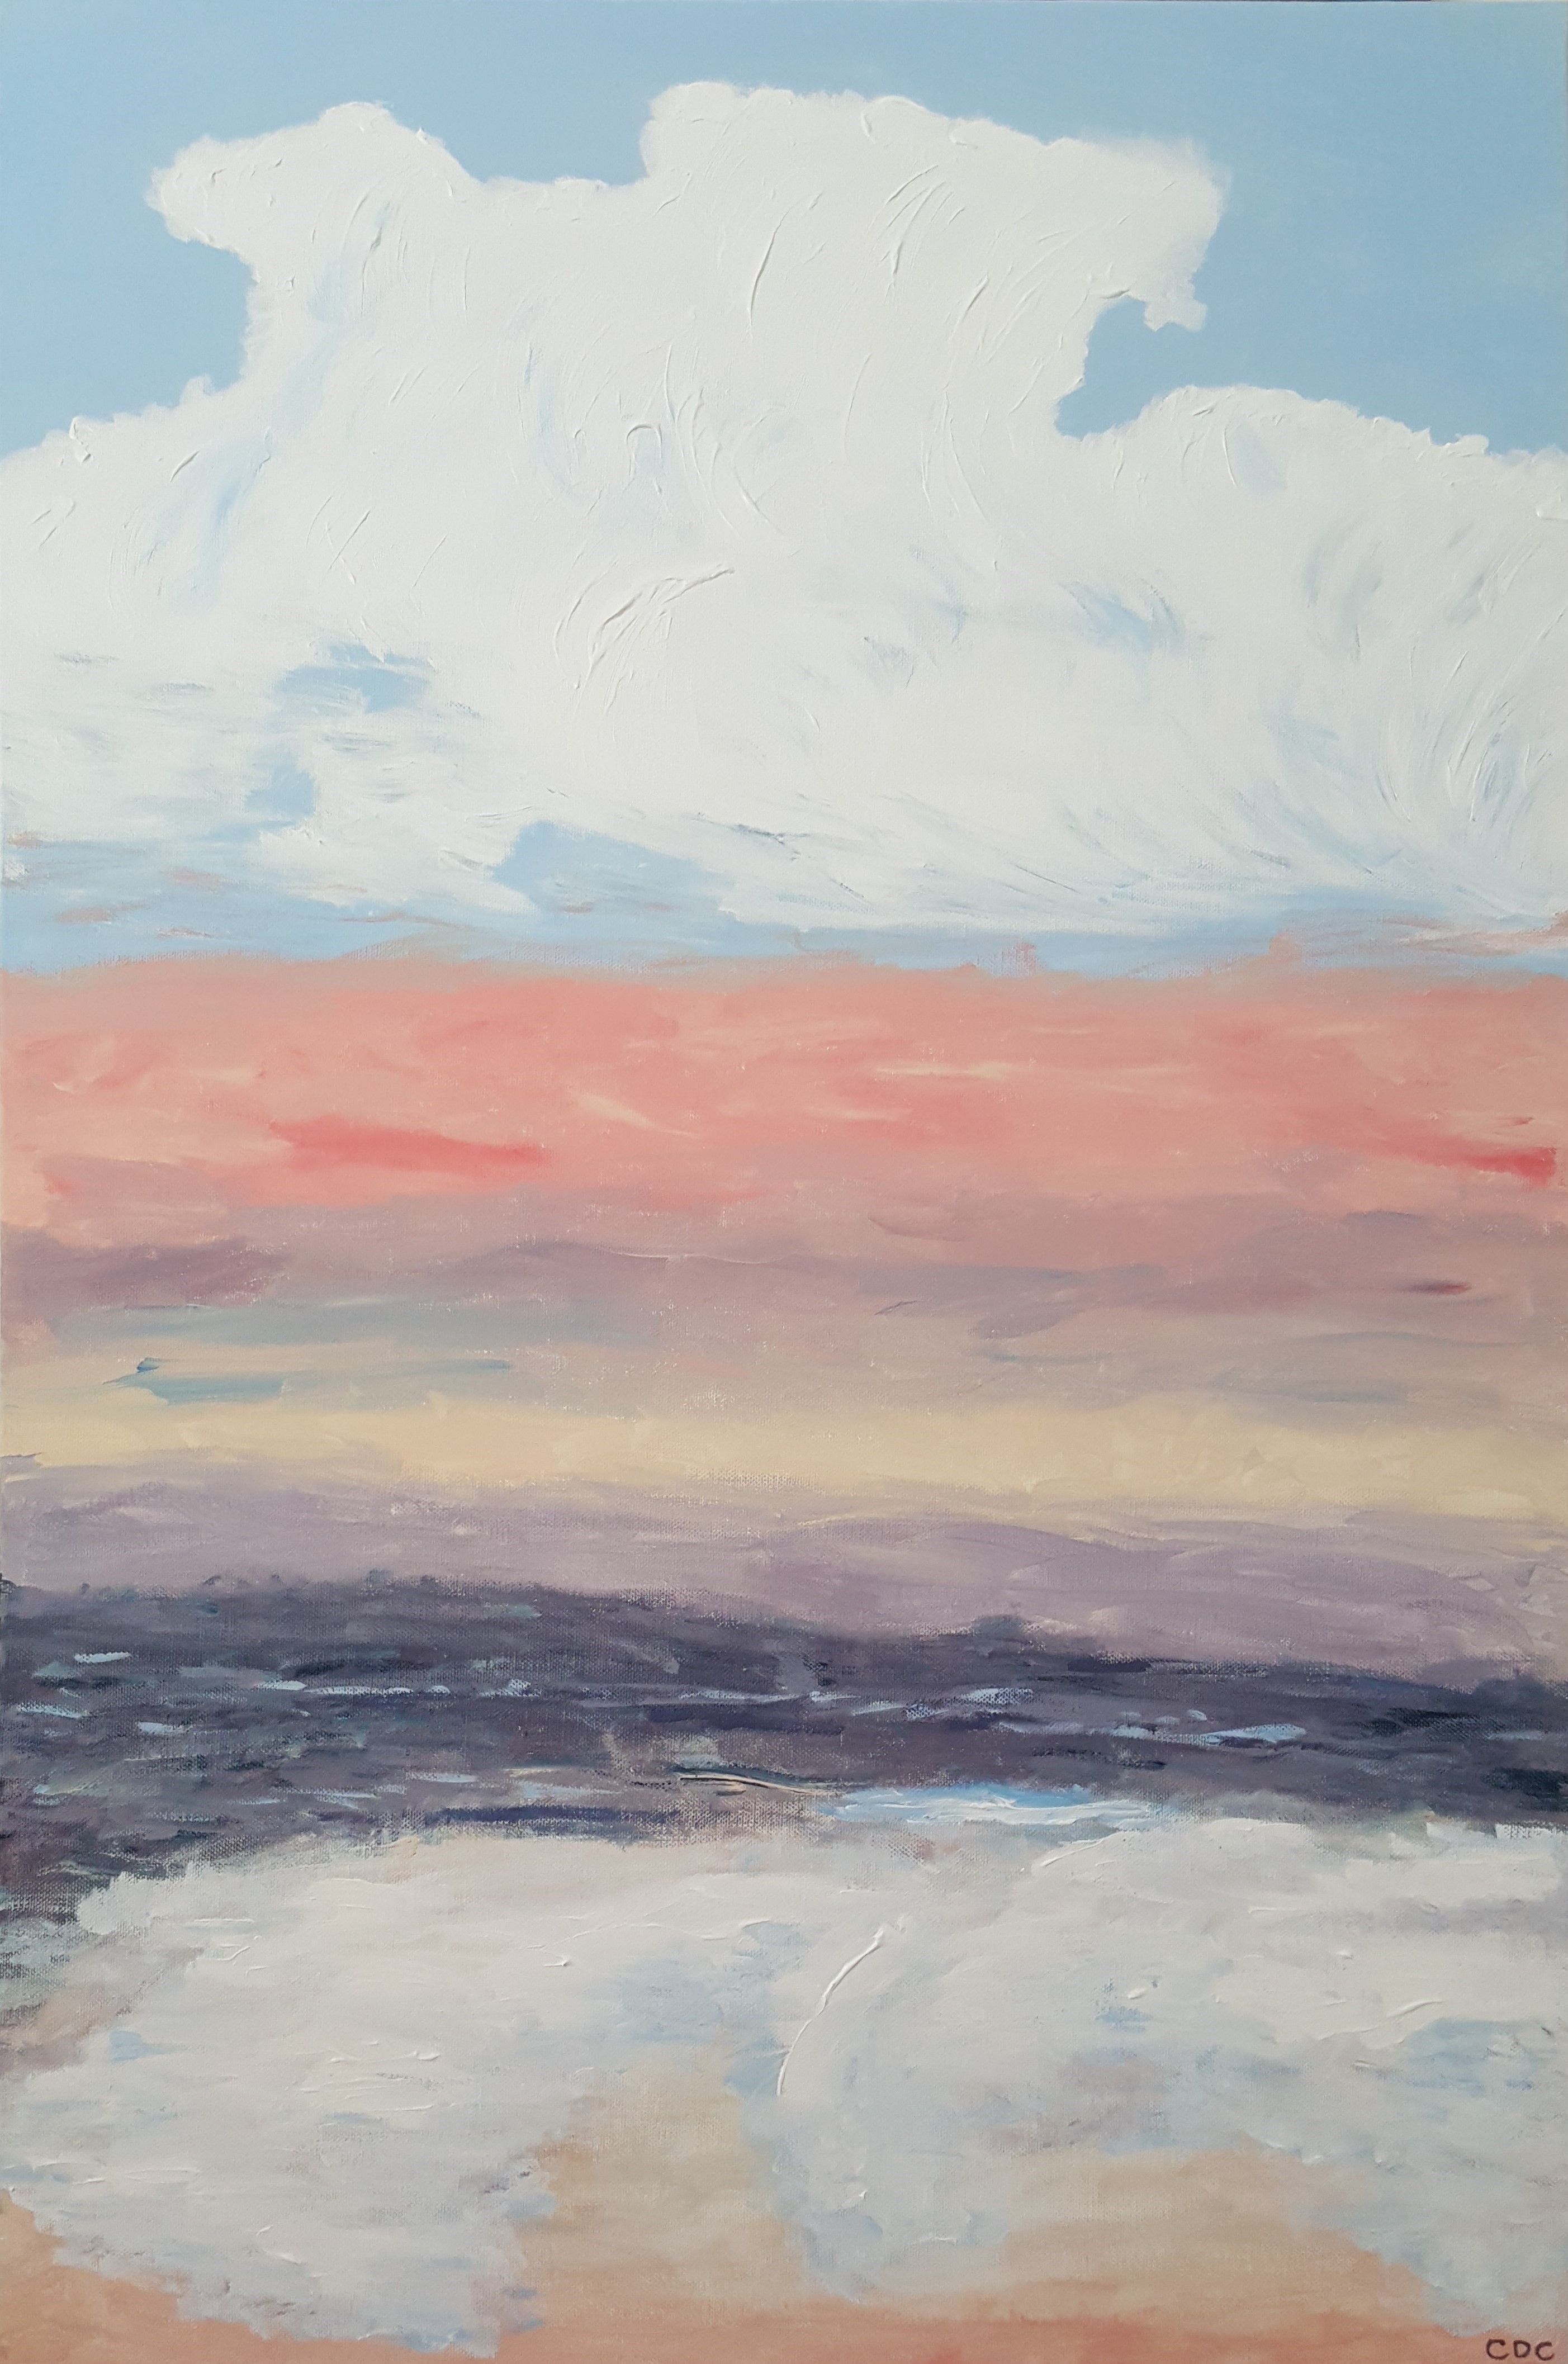 Cloudscape artwork by  CDC - art listed for sale on Artplode